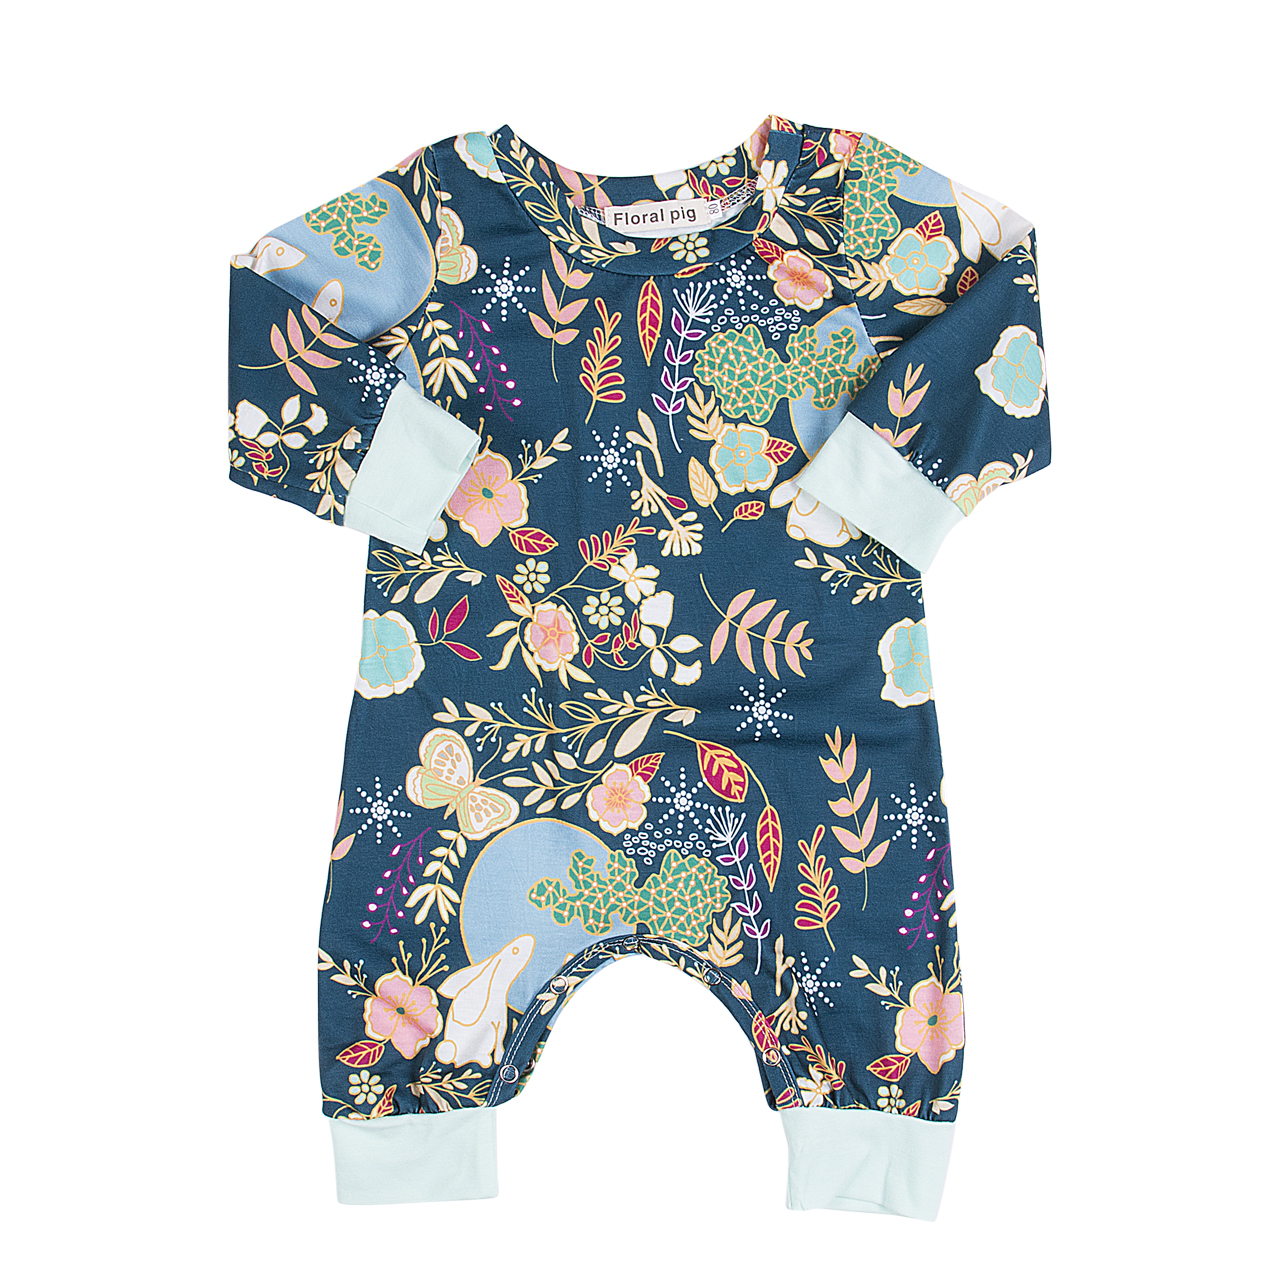 Newborn Toddler Infantil Baby Boy Girl Unisex Harem Romper Jumpsuit Casual Clothes One Piece Outfits US Stock puseky 2017 infant romper baby boys girls jumpsuit newborn bebe clothing hooded toddler baby clothes cute panda romper costumes